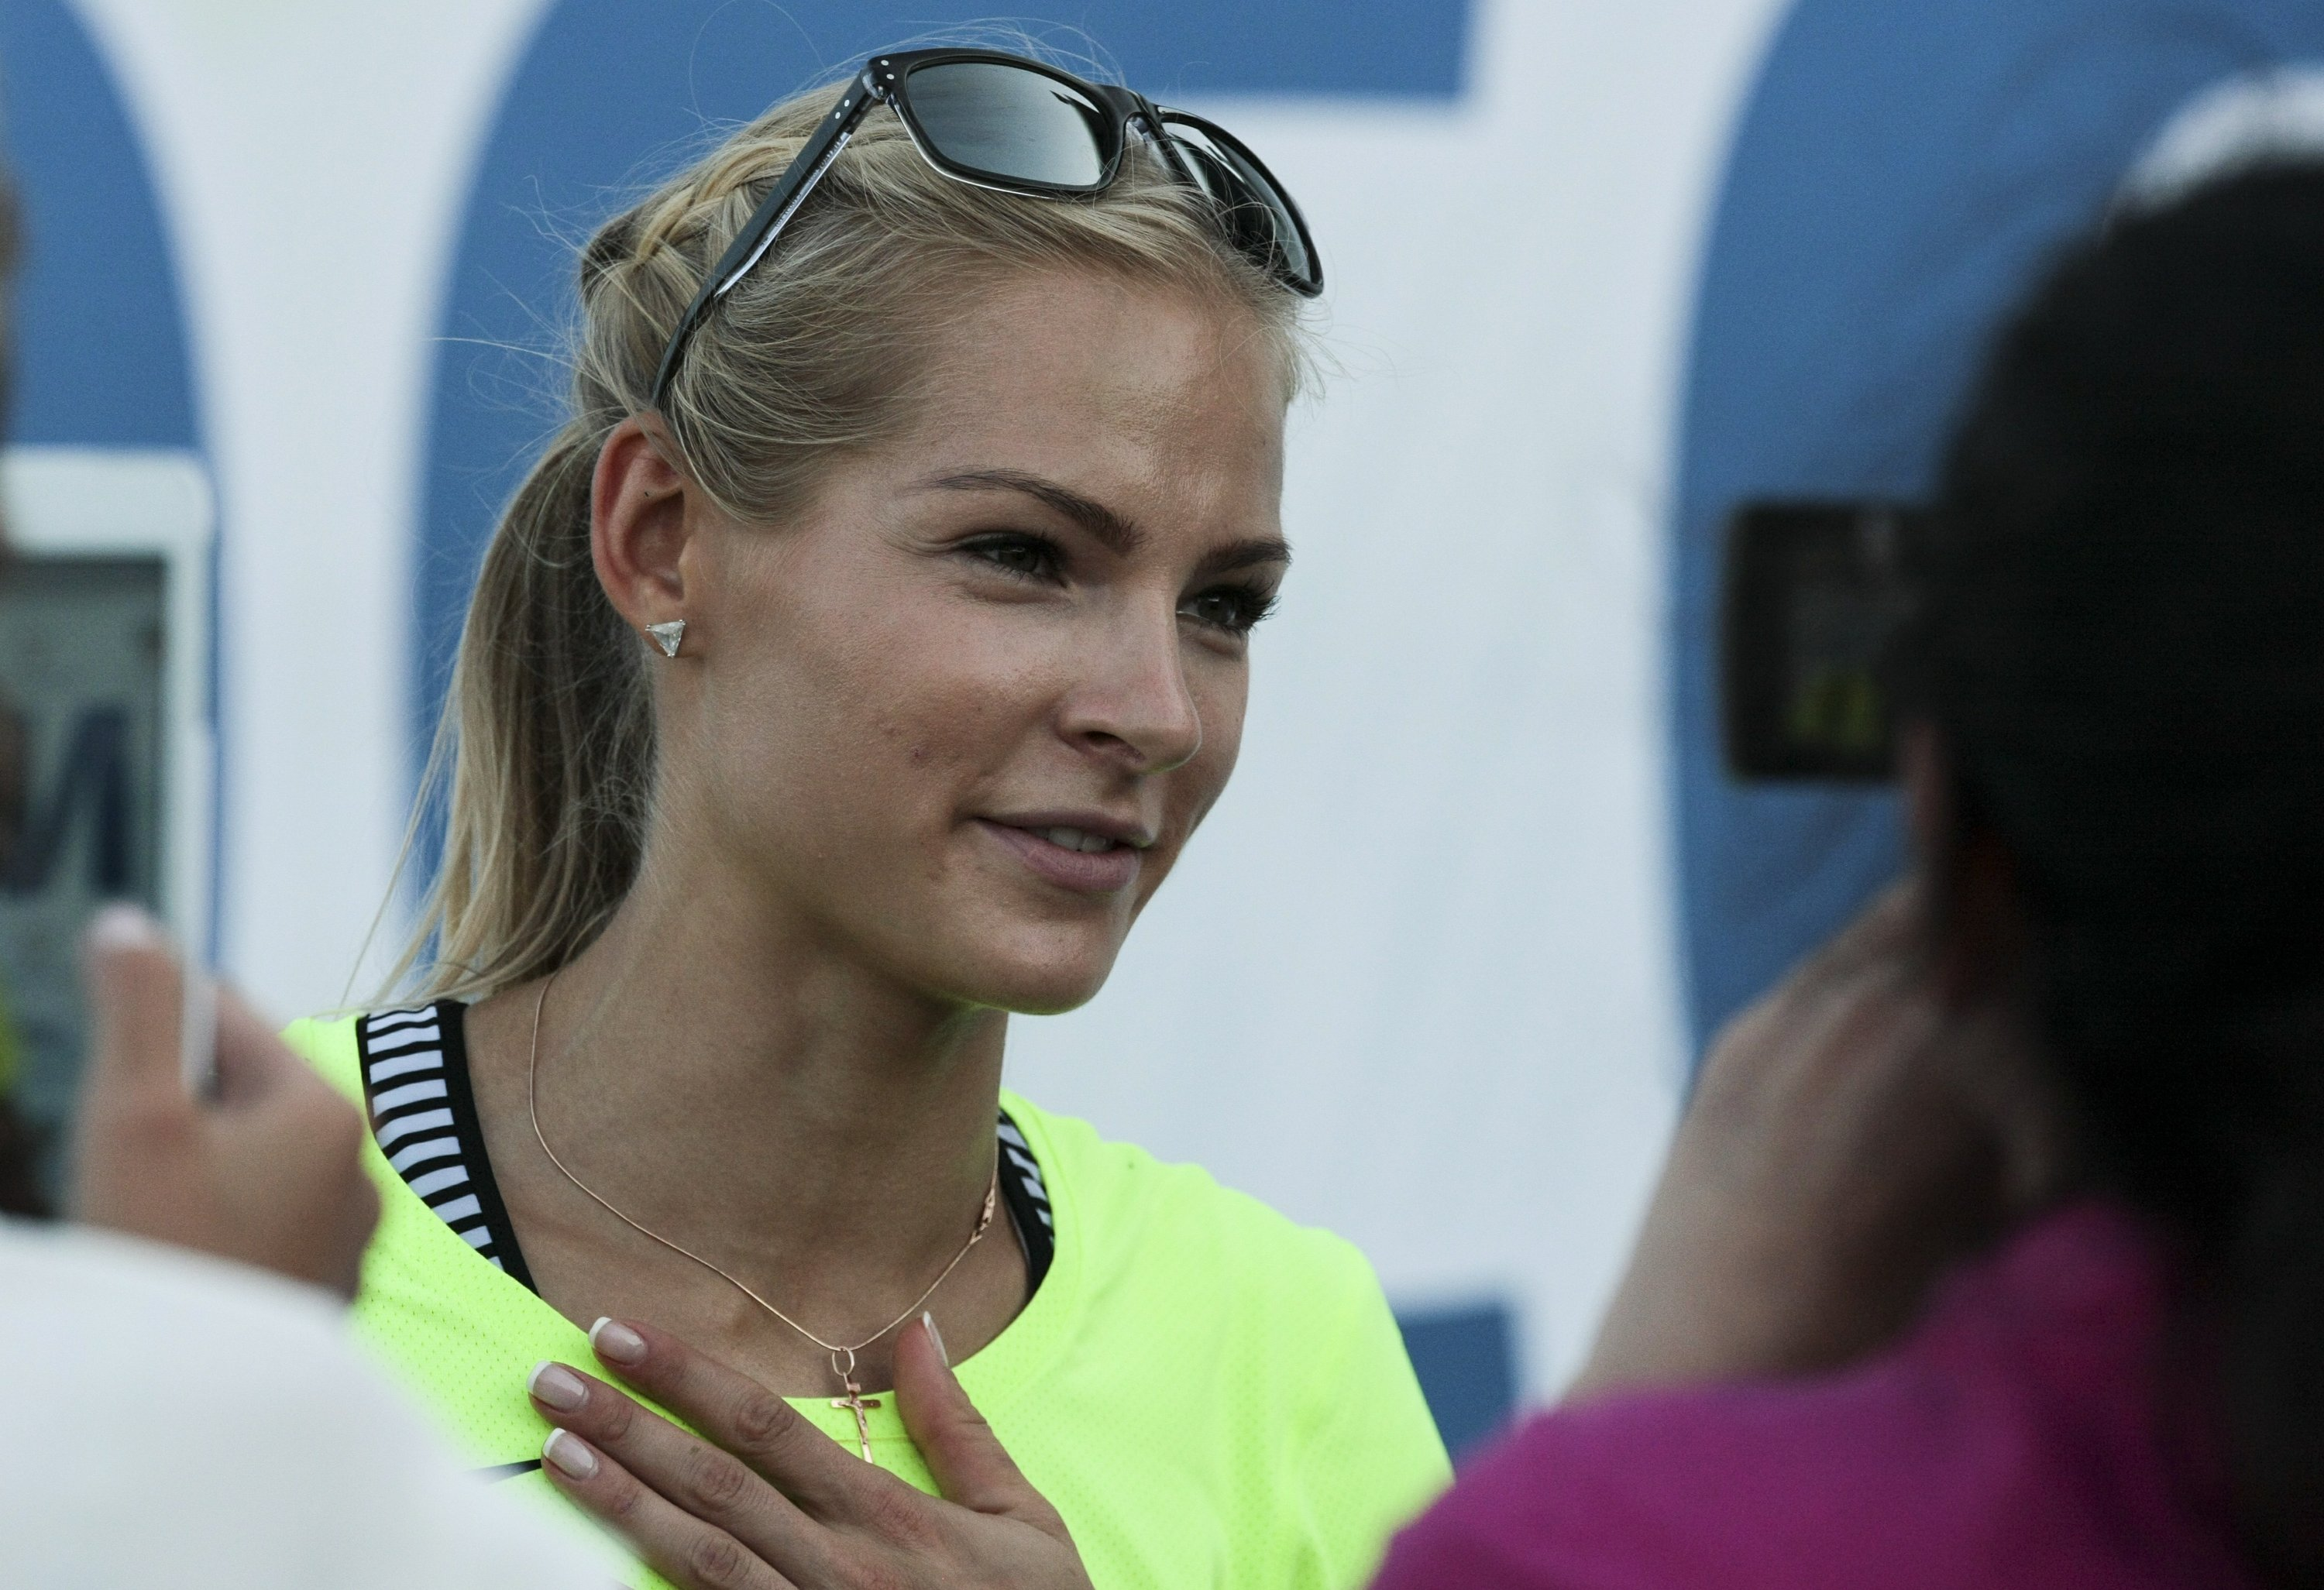 The Latest: Klishina wins appeal to compete in Rio